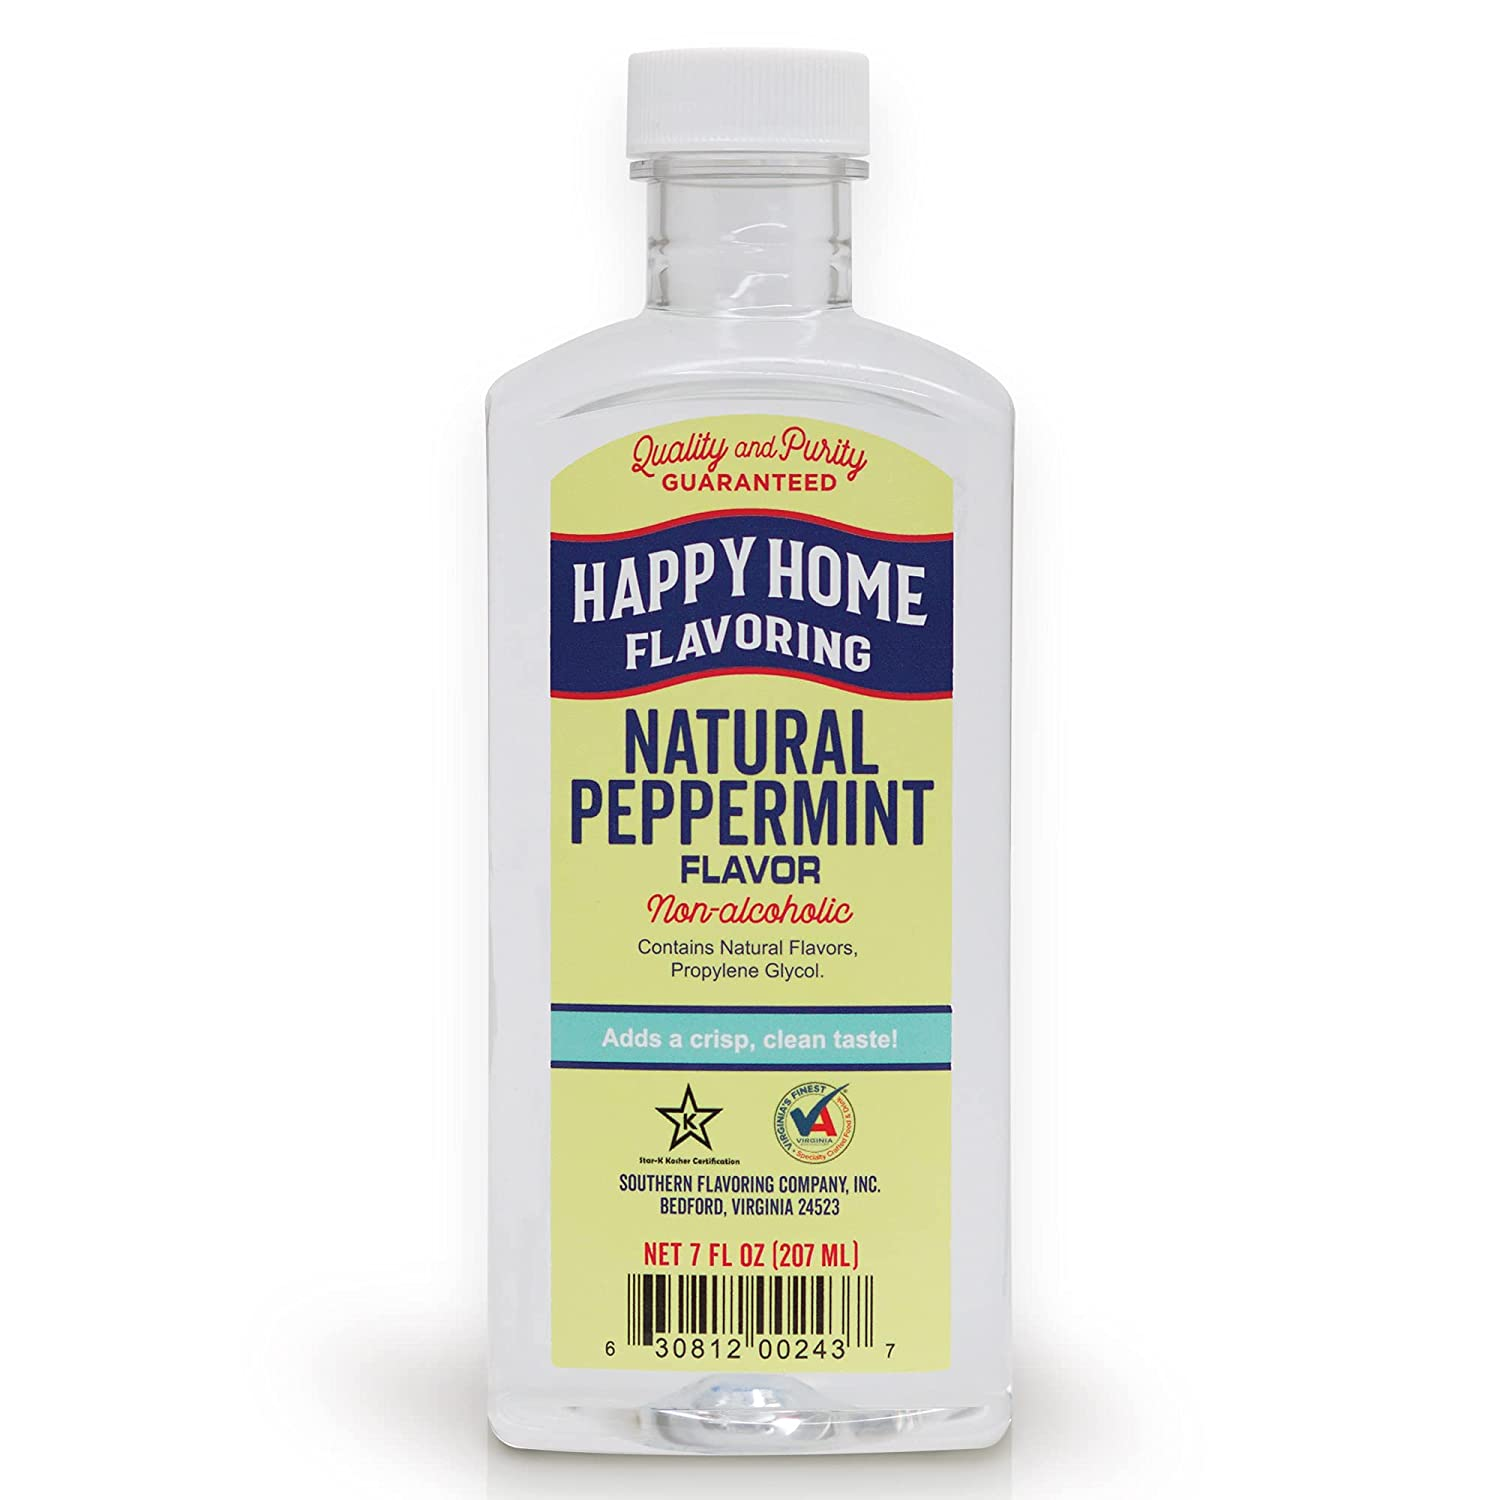 Happy Home Natural Peppermint Flavoring, Non-Alcoholic, Certified Kosher, 7 oz.